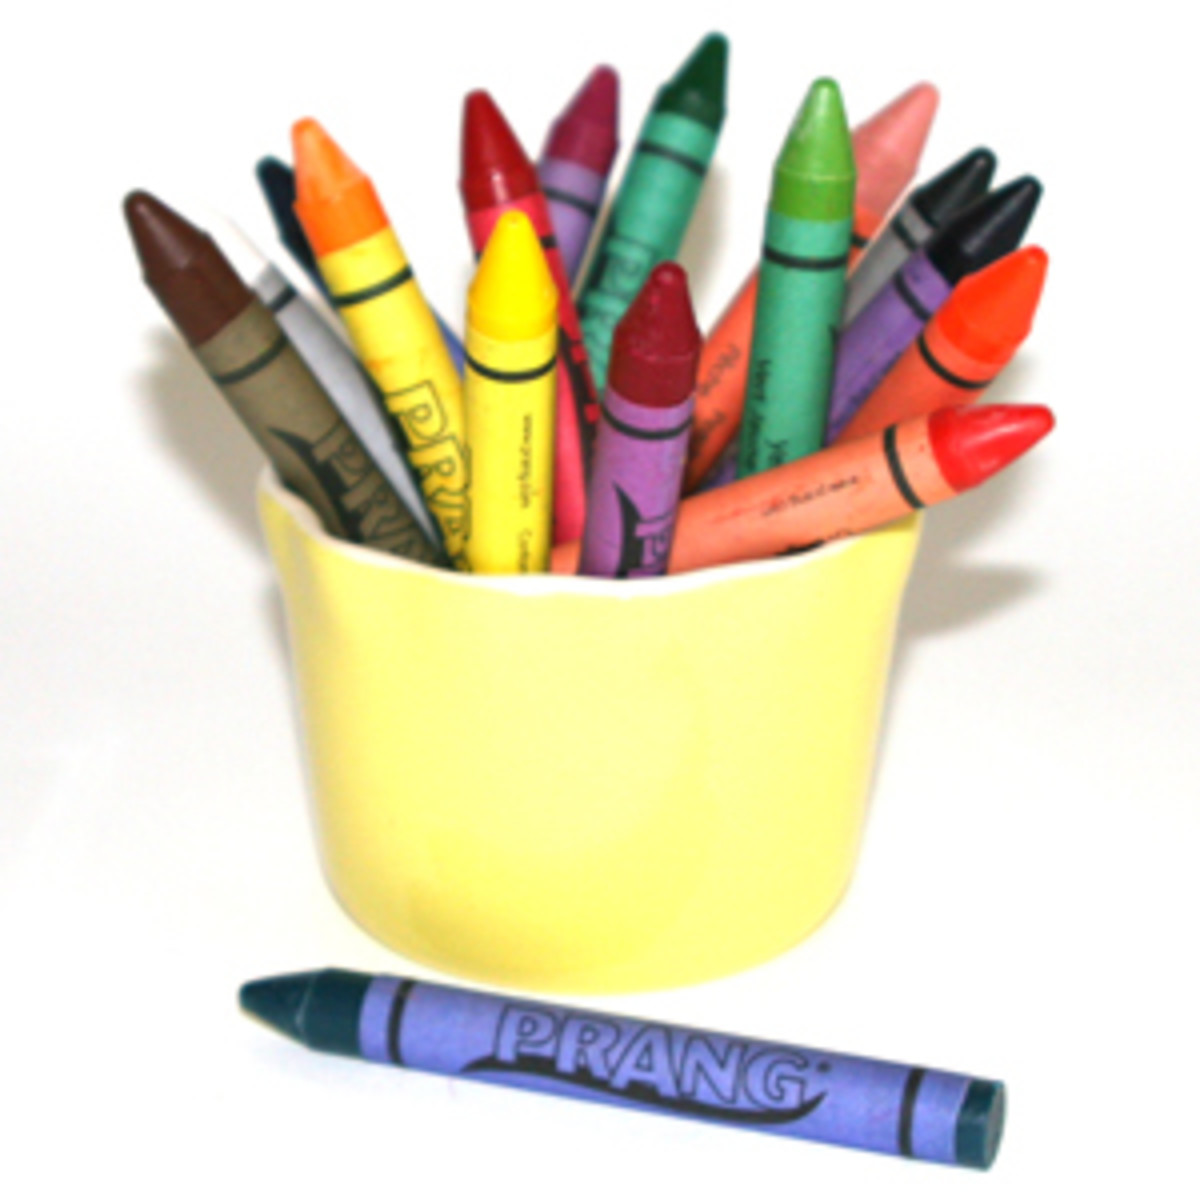 Crayons made from soybean